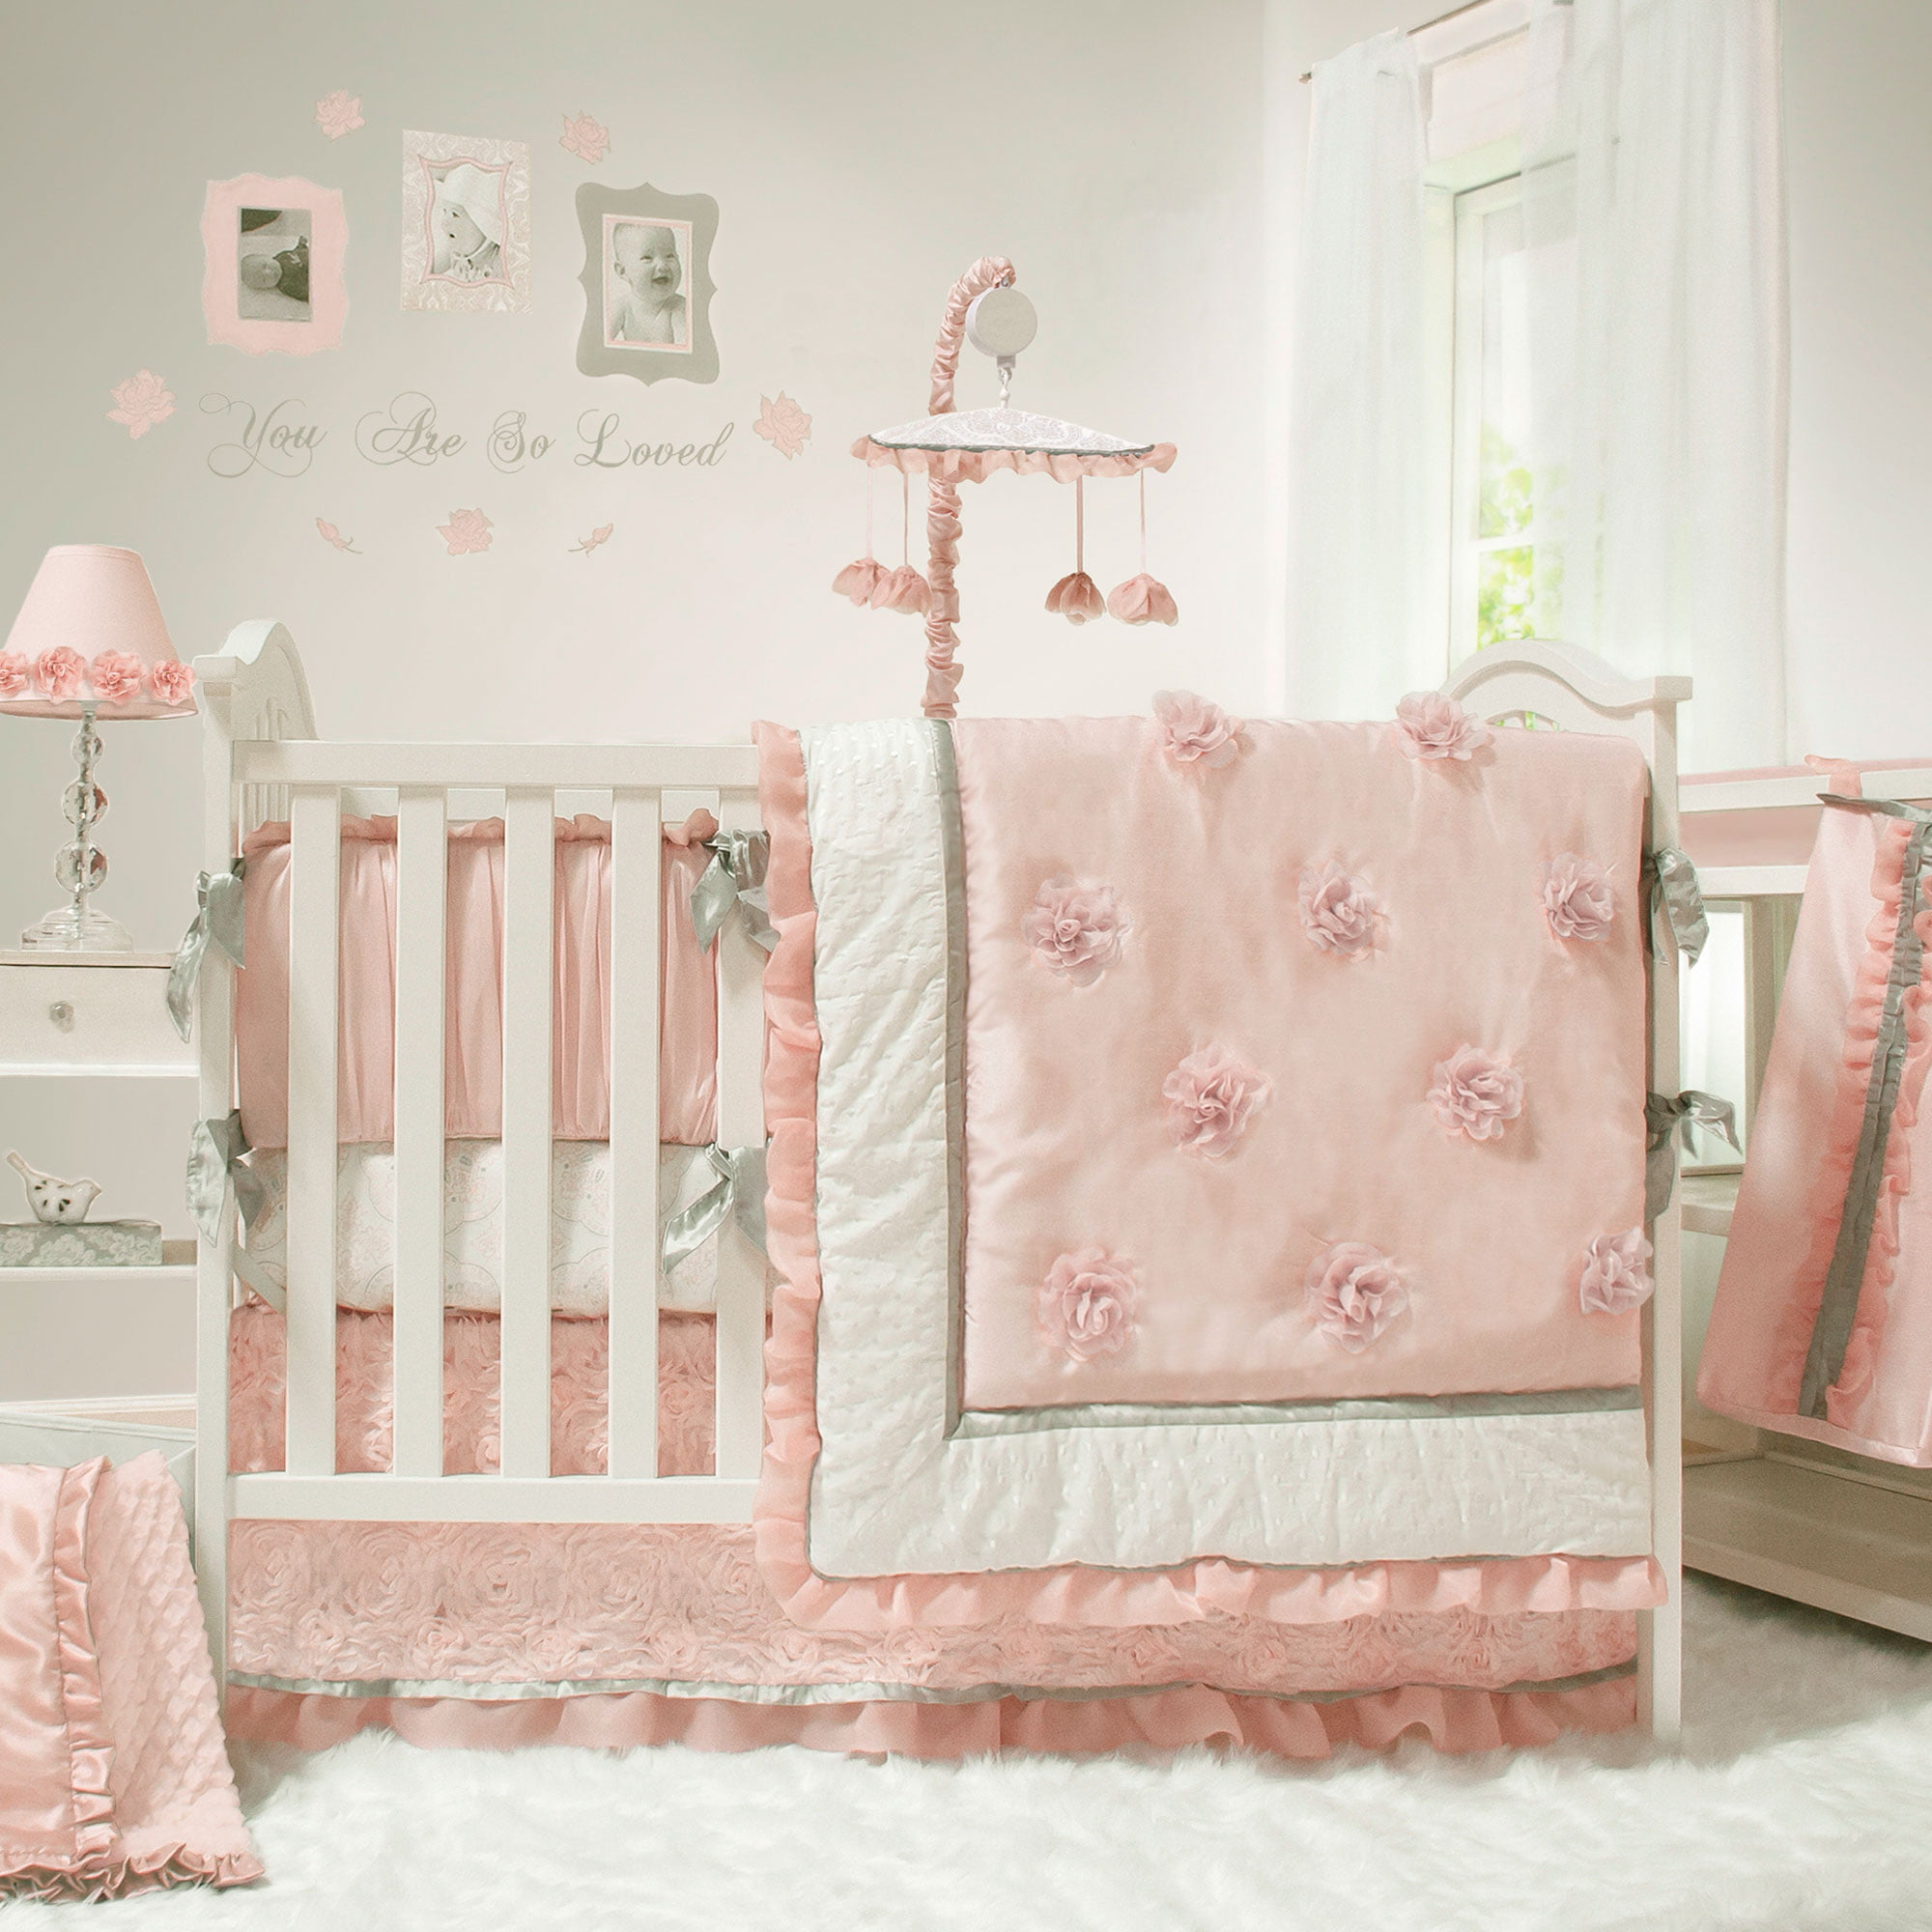 Baby girl cot bed bedding sets - The Peanut Shell Baby Girl Crib Bedding Set Pink And White Arianna 4 Piece Set Walmart Com